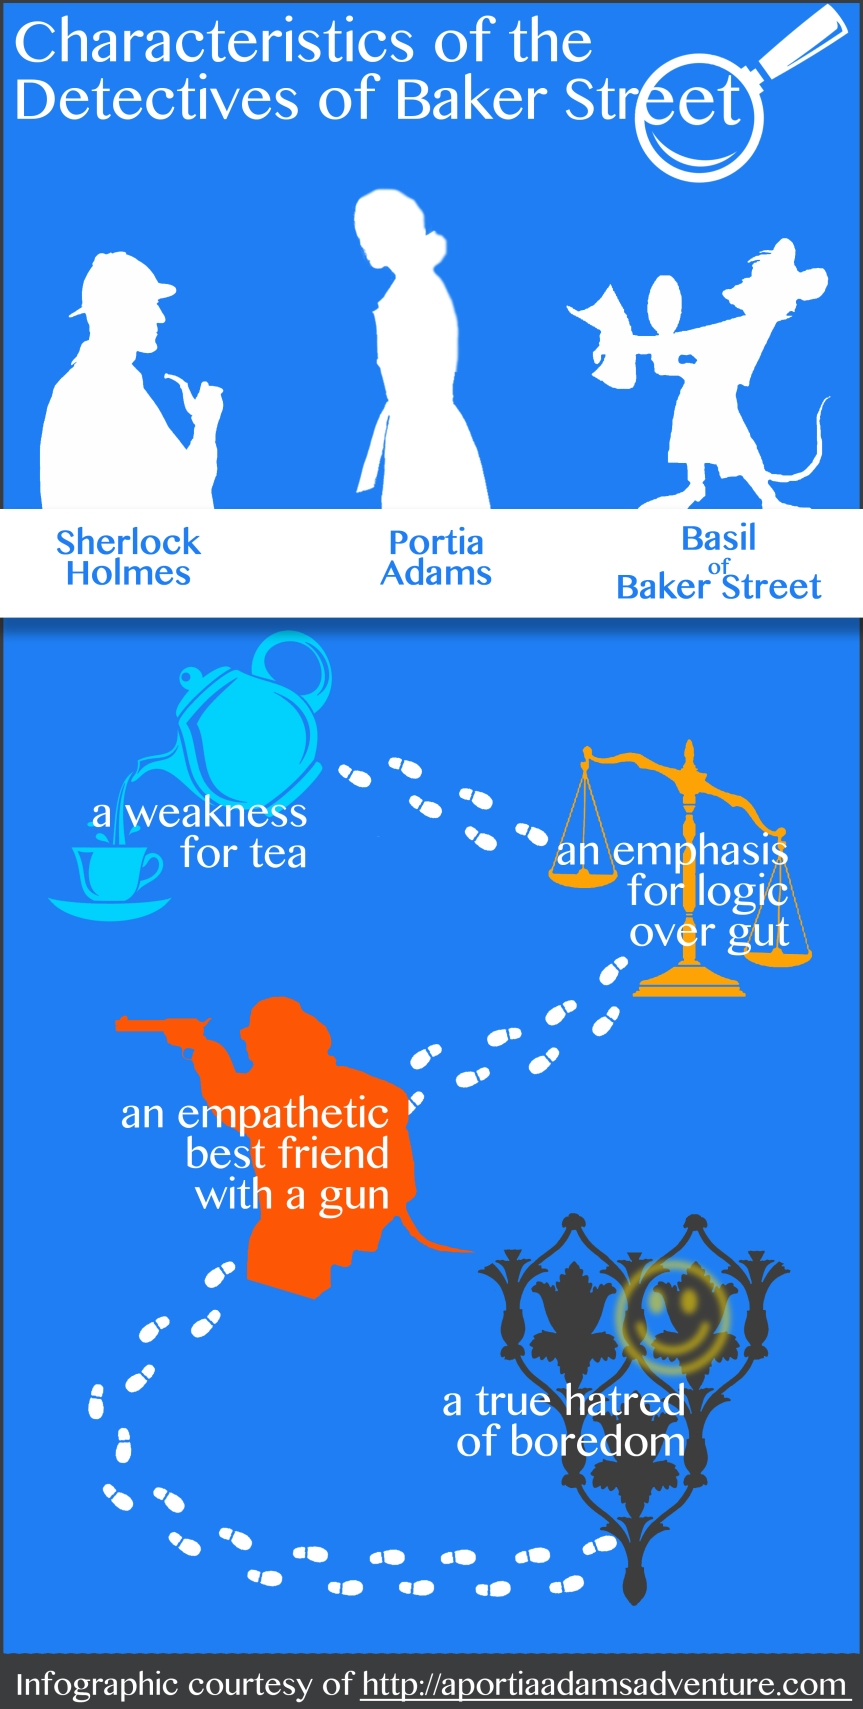 [INFOGRAPHIC] Characteristics of the detectives of Baker Street